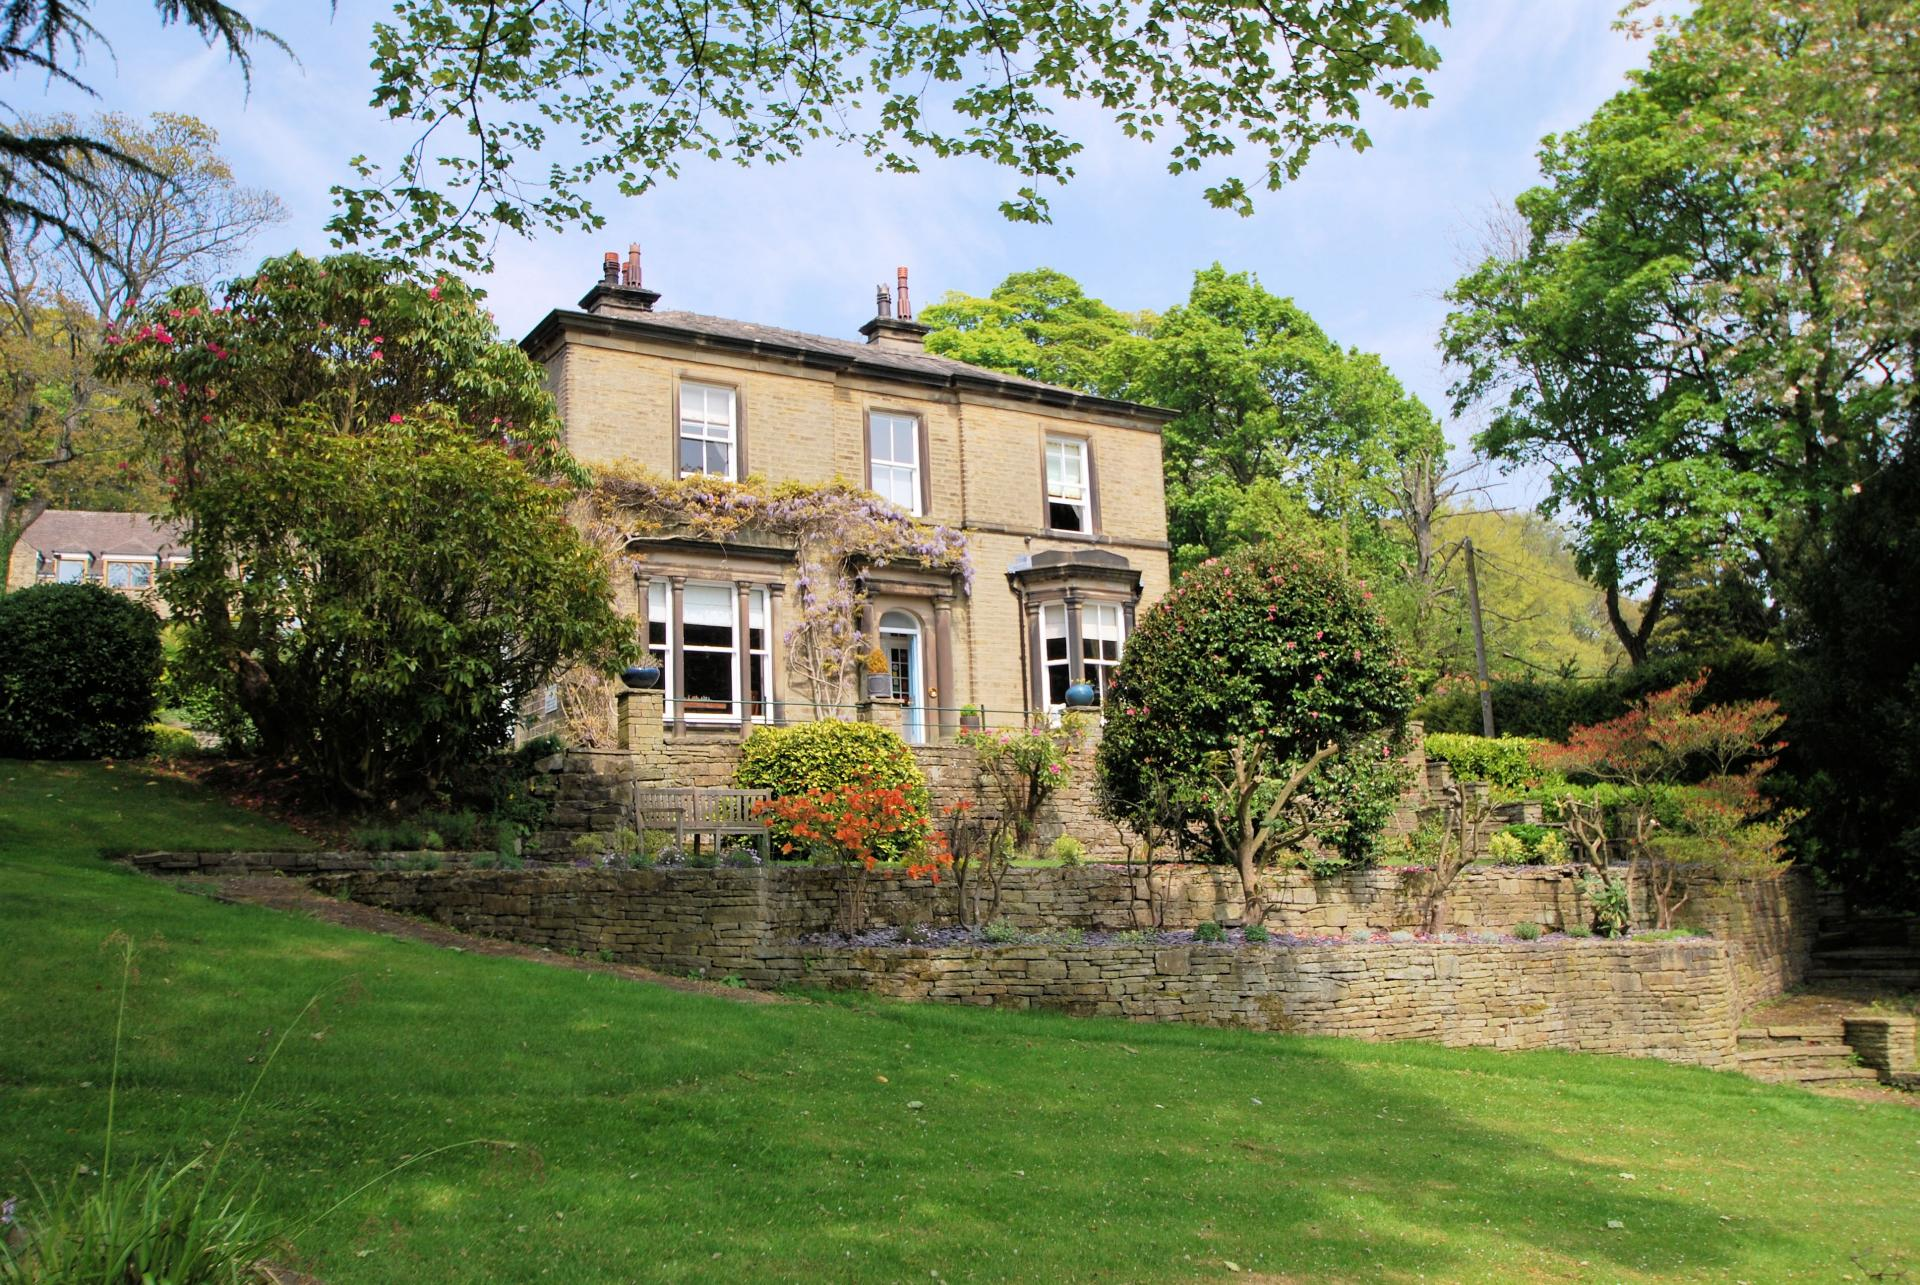 7 bedroom manor house for sale in holmfirth for Manors for sale in usa